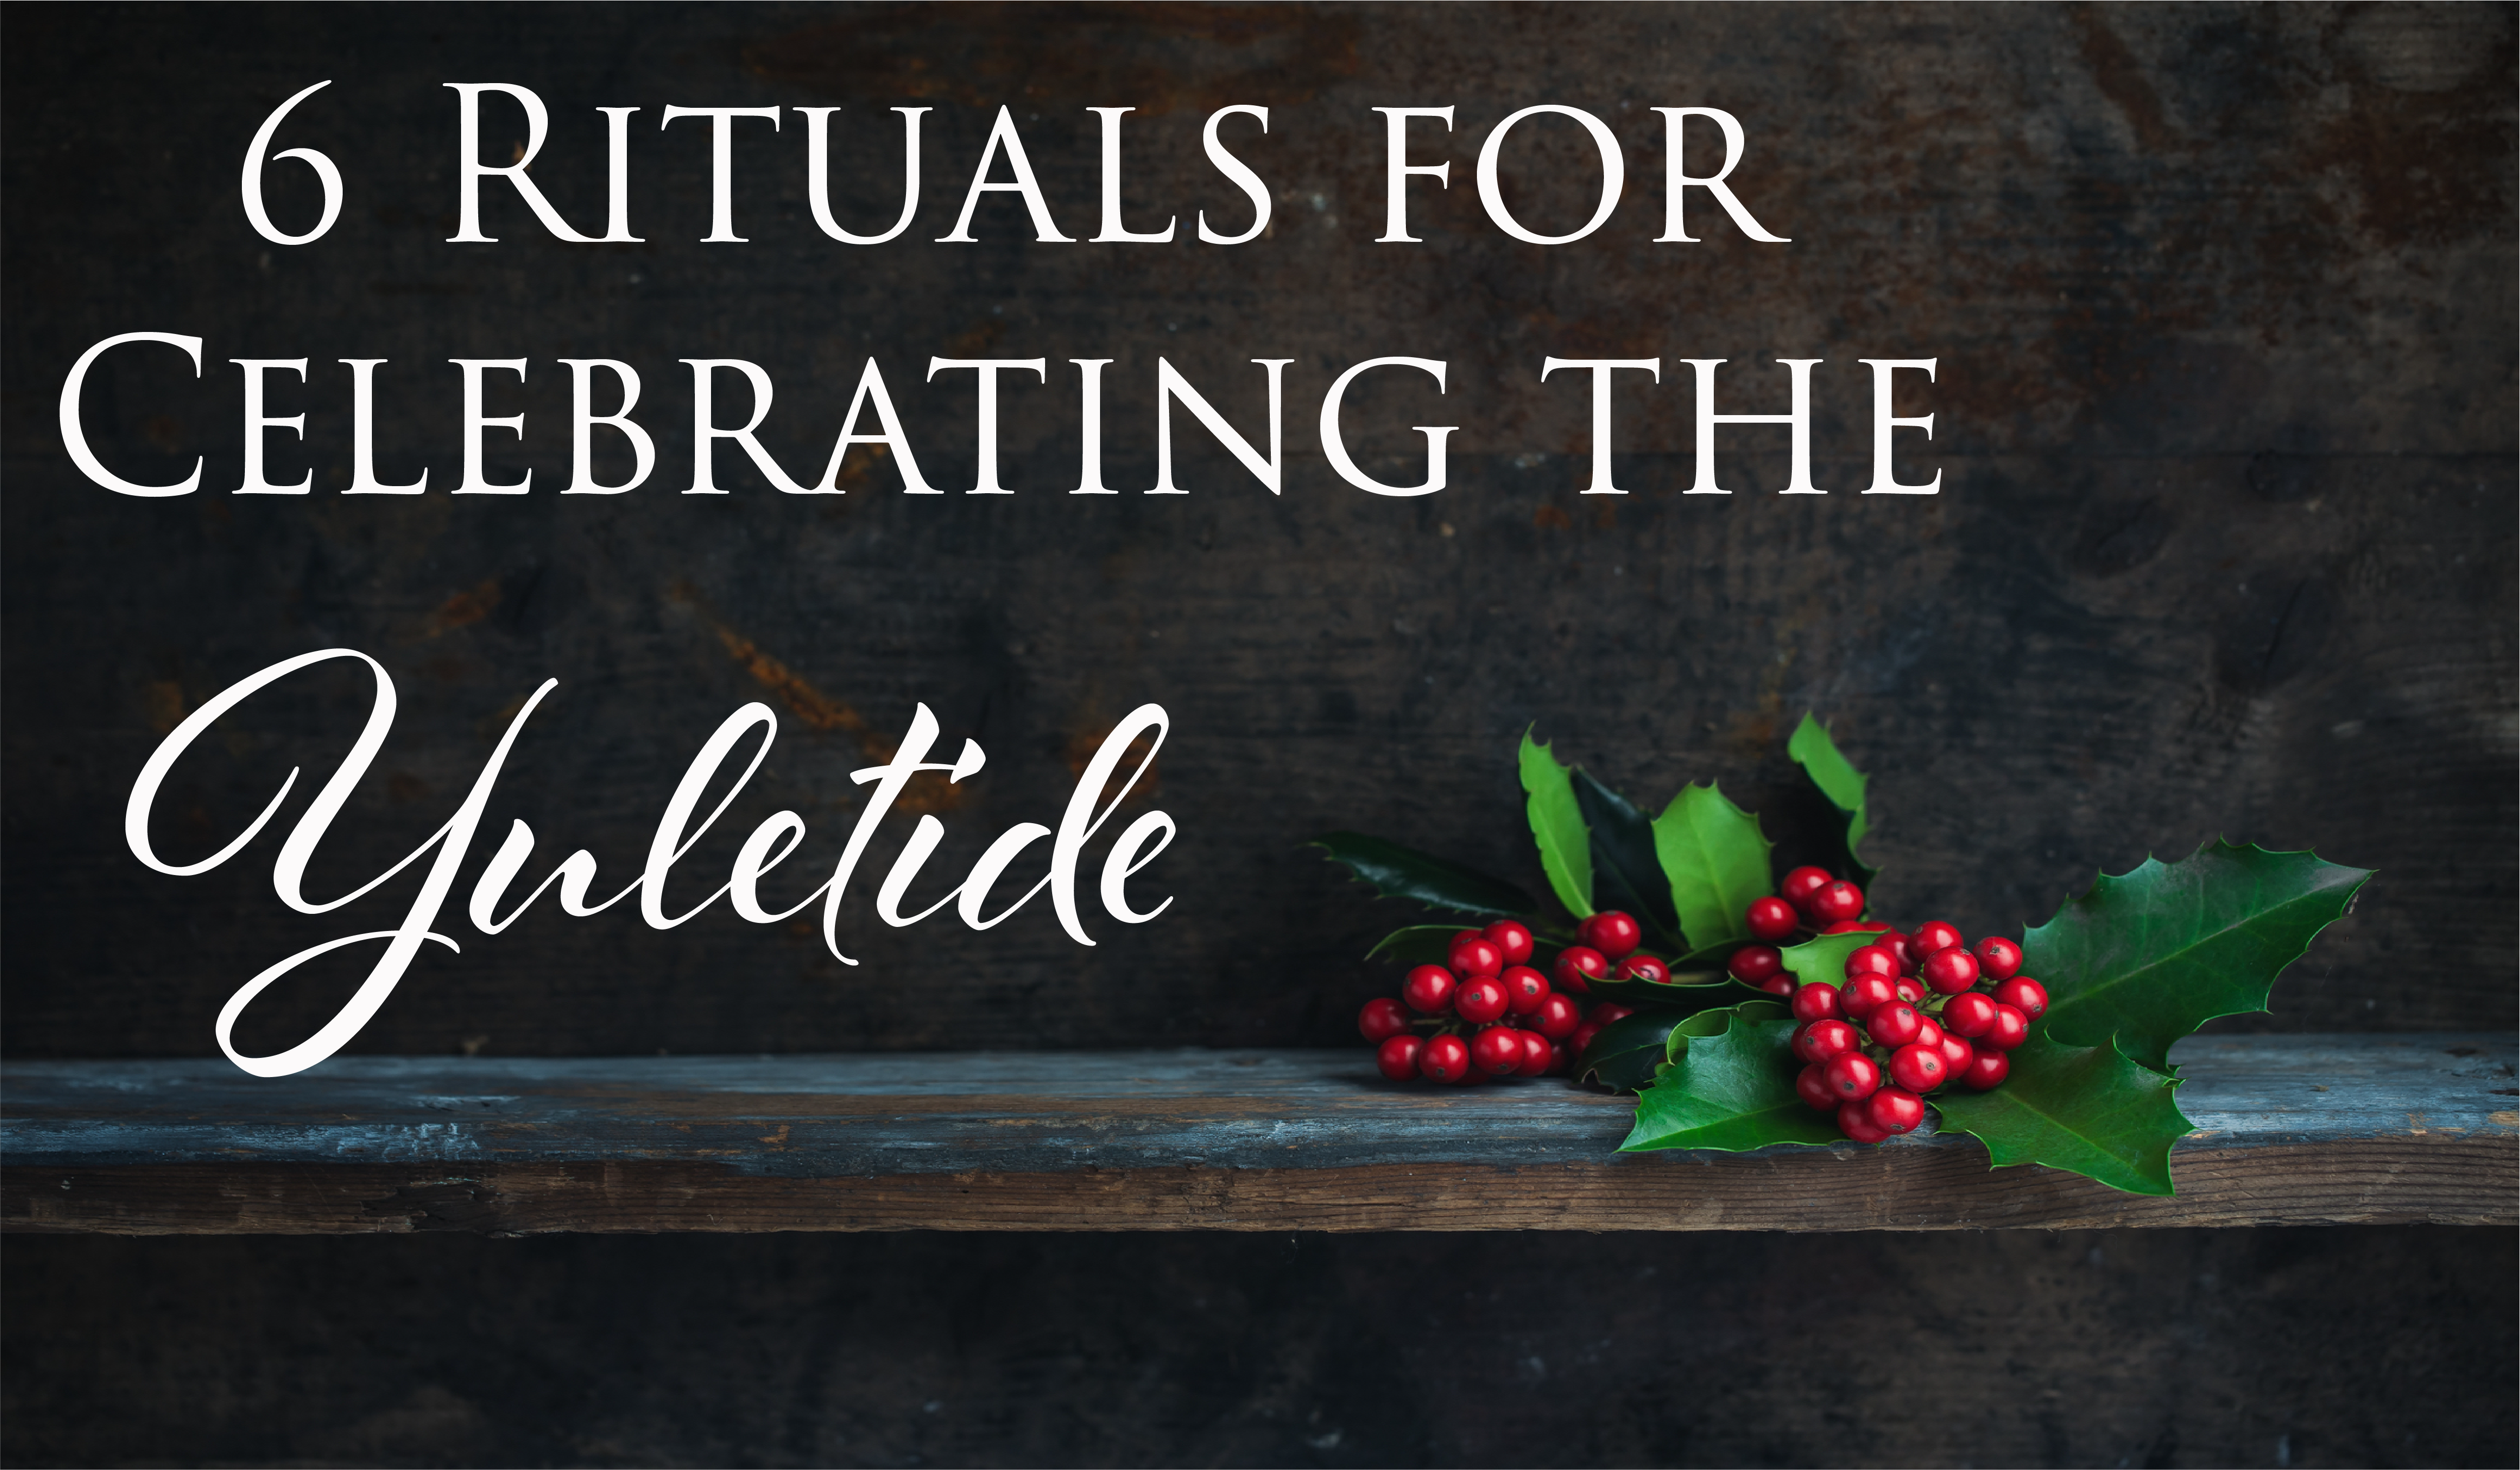 6 Rituals for Celebrating the Yuletide